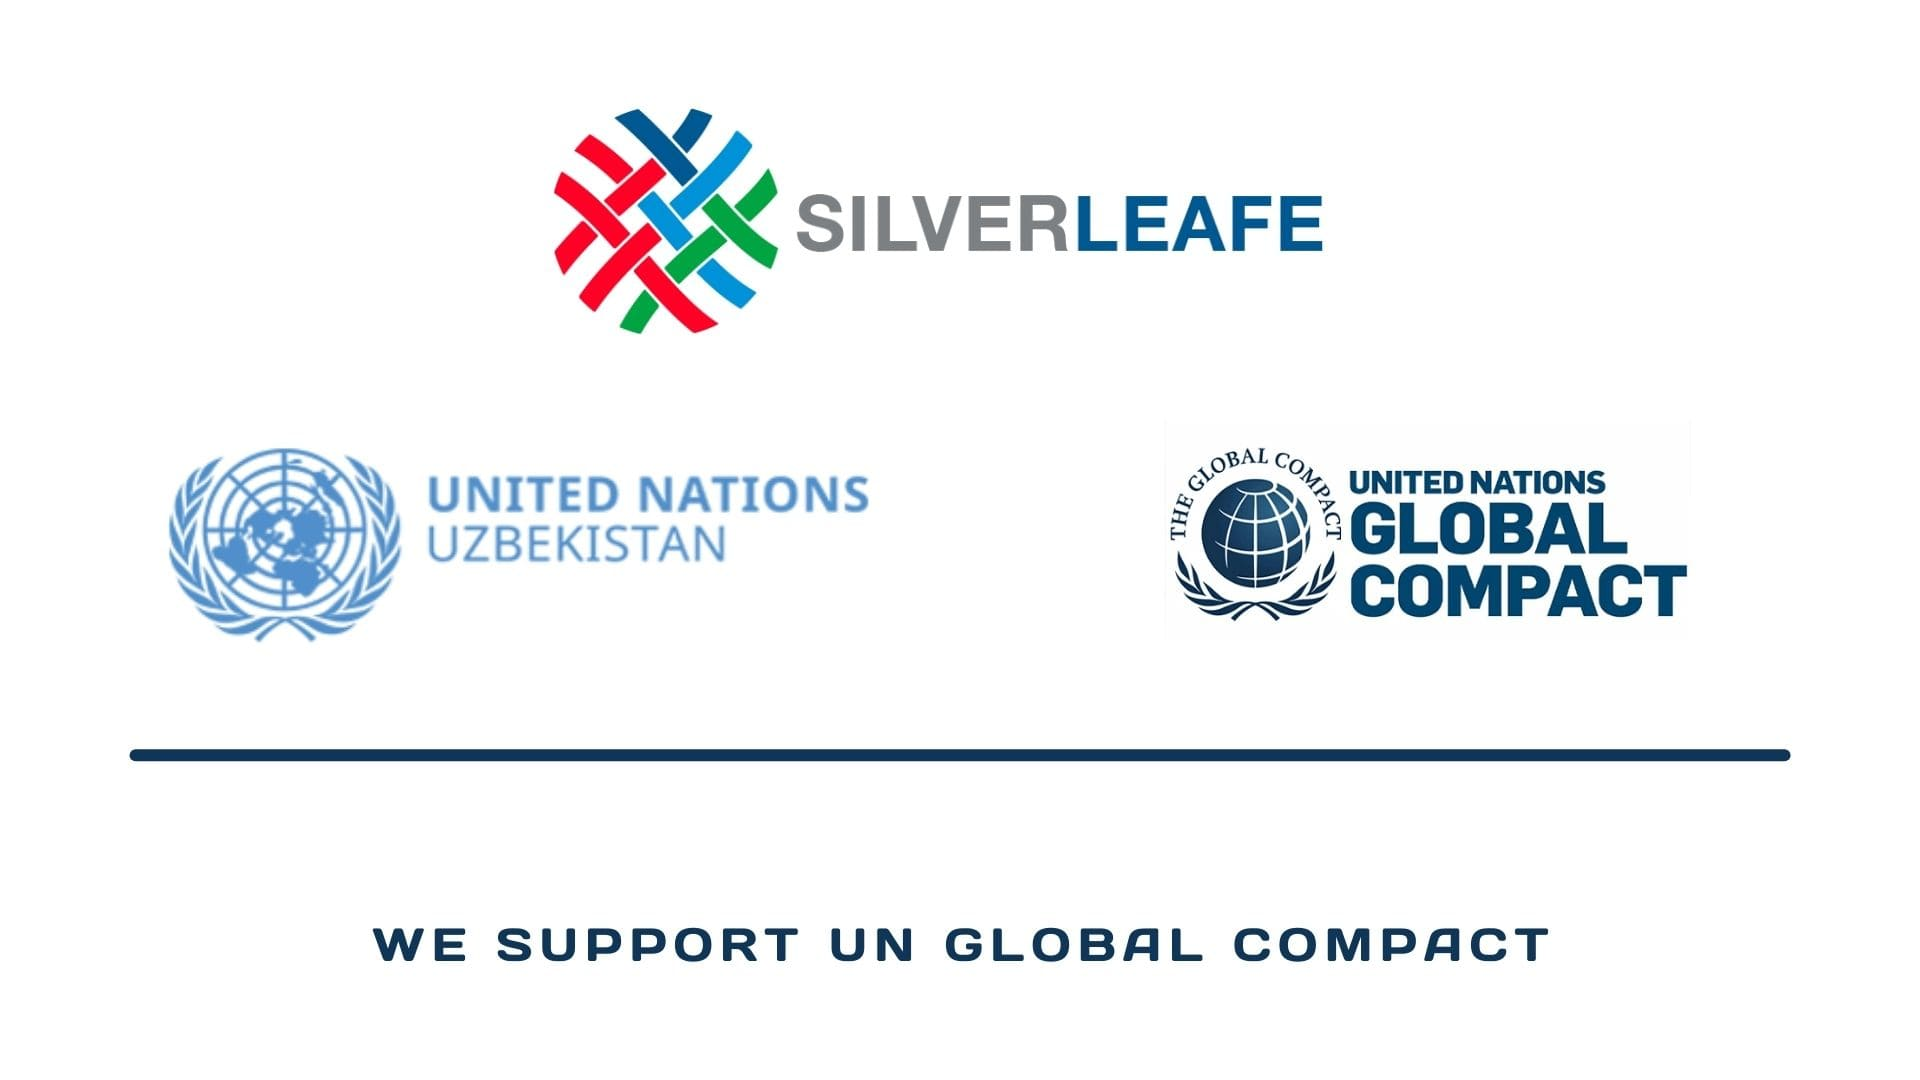 Silverleafe support UN global compact 1 2